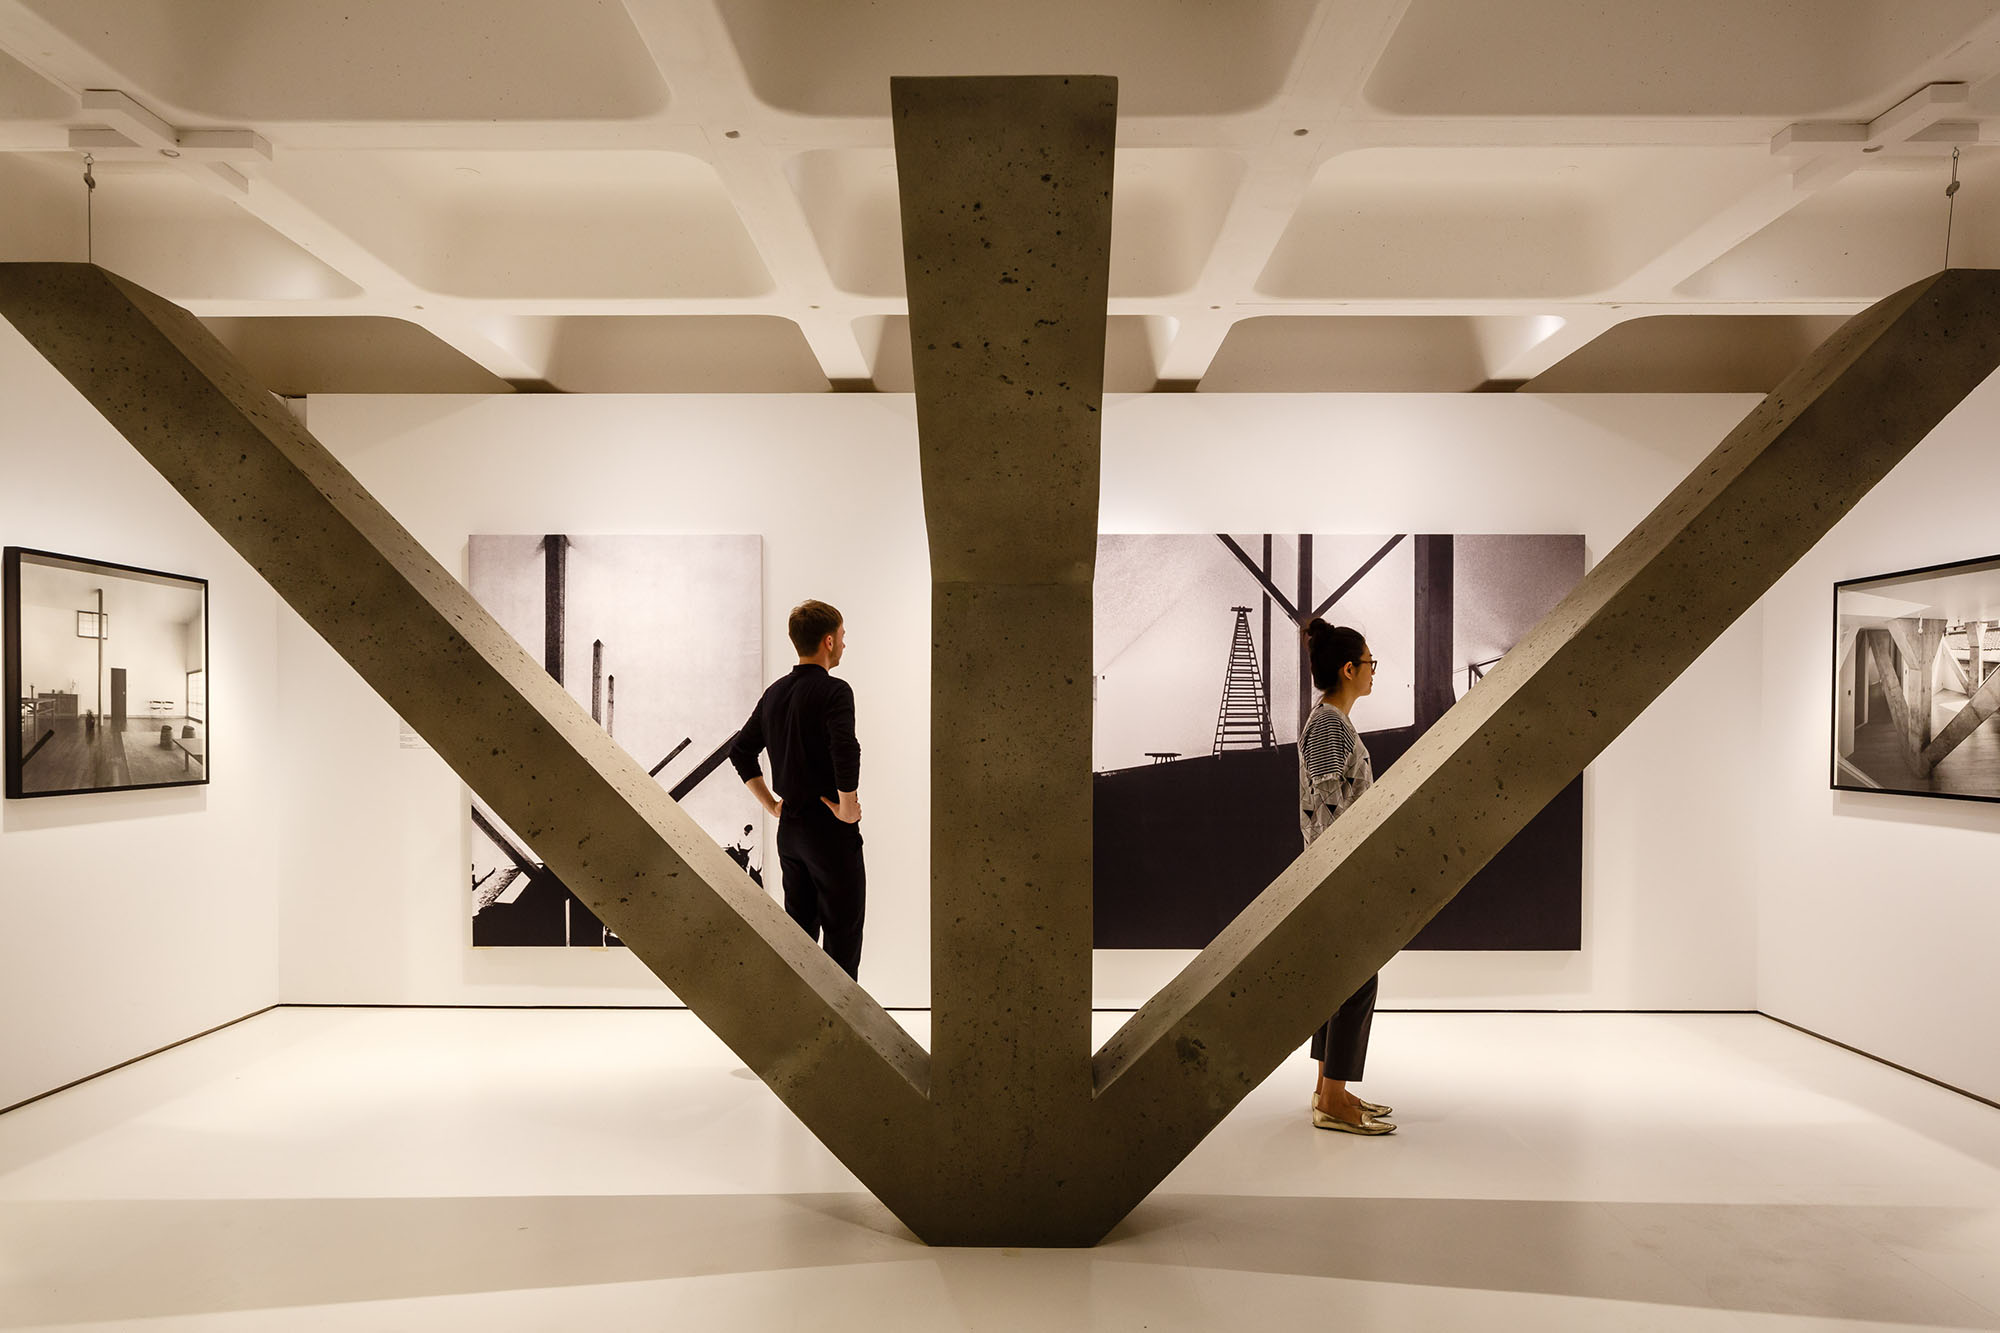 The exhibition includes a 1:1 reconstruction of the structural beams used by architect Kazuo Shinohara's House in Uehara (1976), a house created for photographer Kiyoji Ohtsuji. The main portion of the house is a concrete block with a lightweight steel structure on top